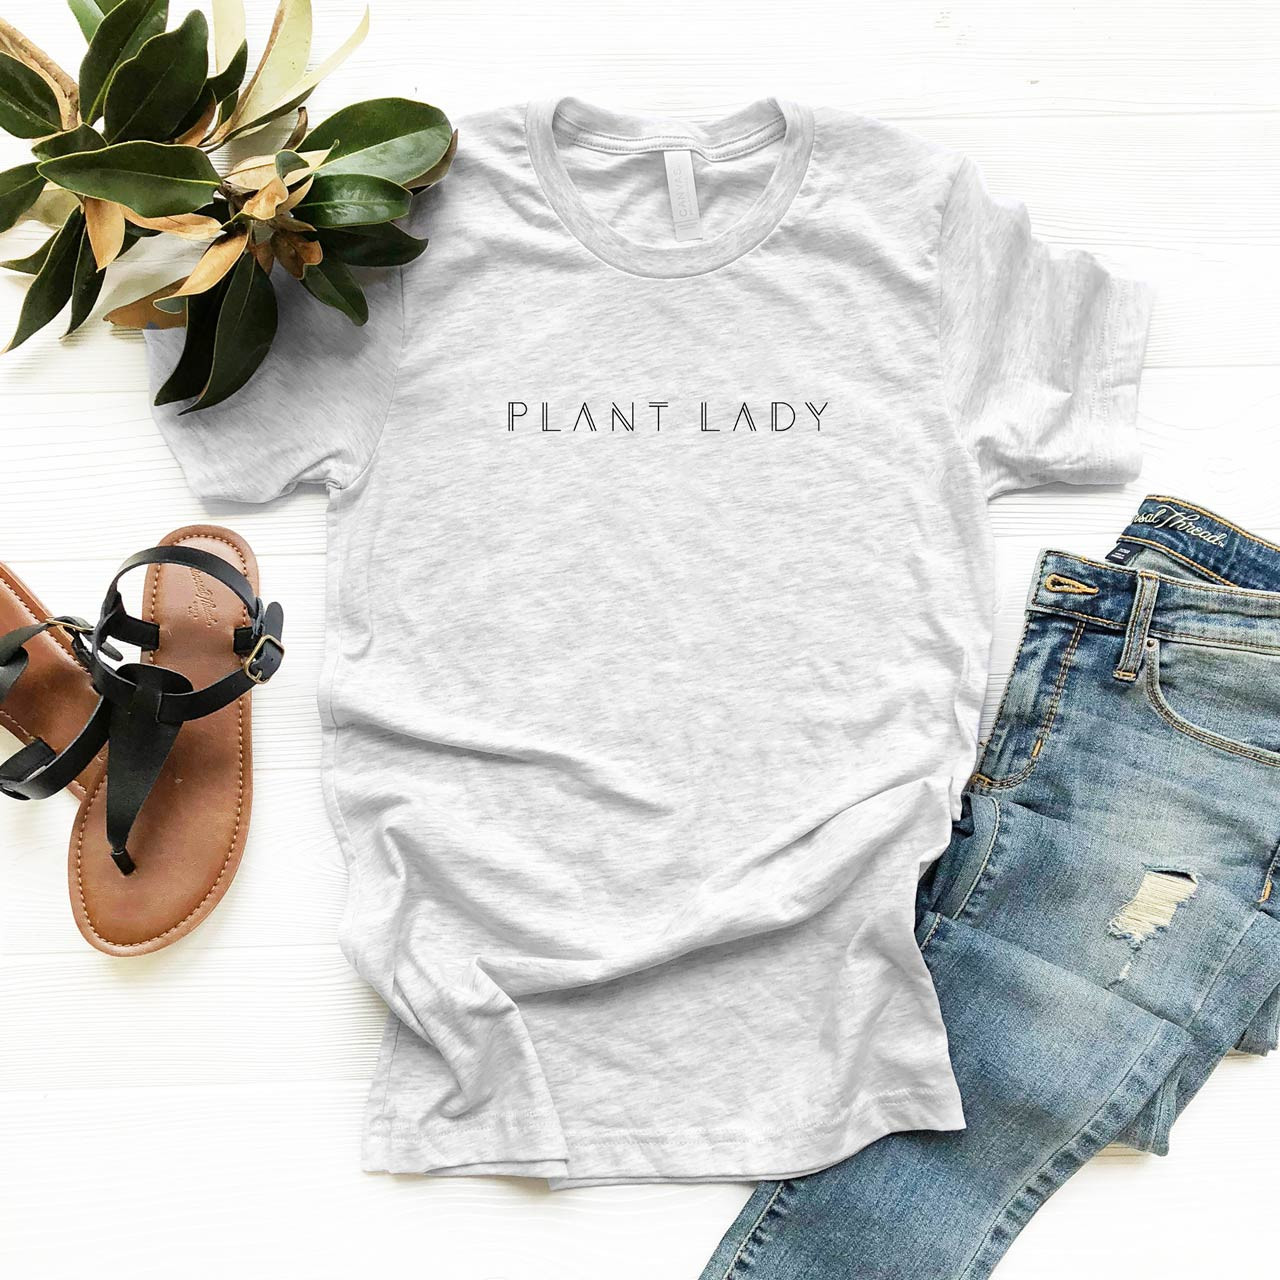 PLANT LADY Vintage T-Shirt (Black on Light Gray Fleck) from The Printed Home